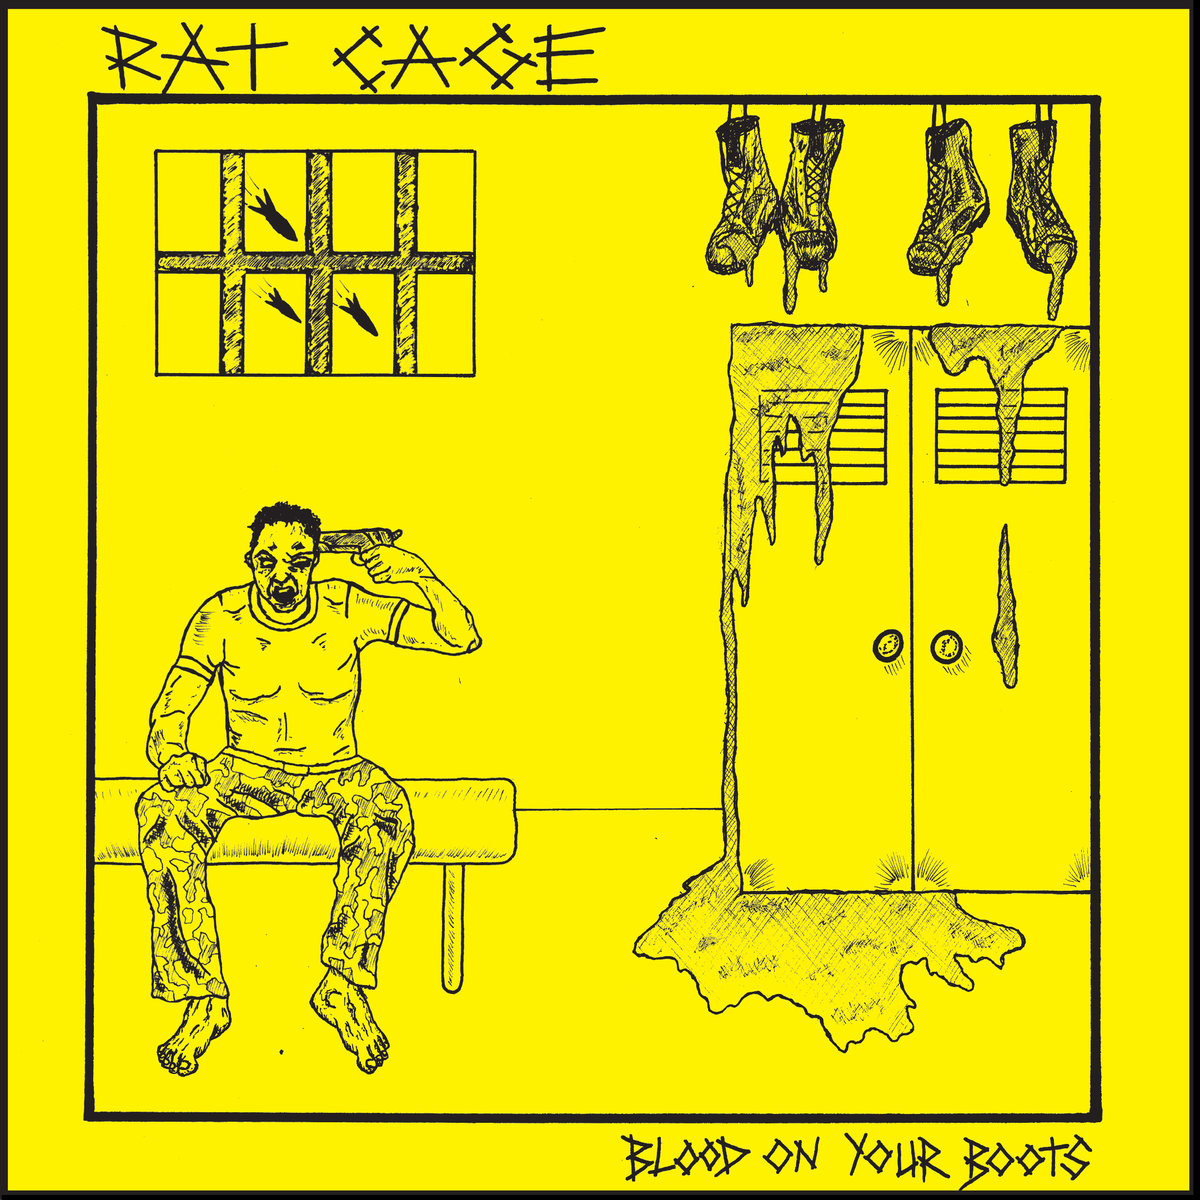 Rat Cage - Blood On Your Boots 7